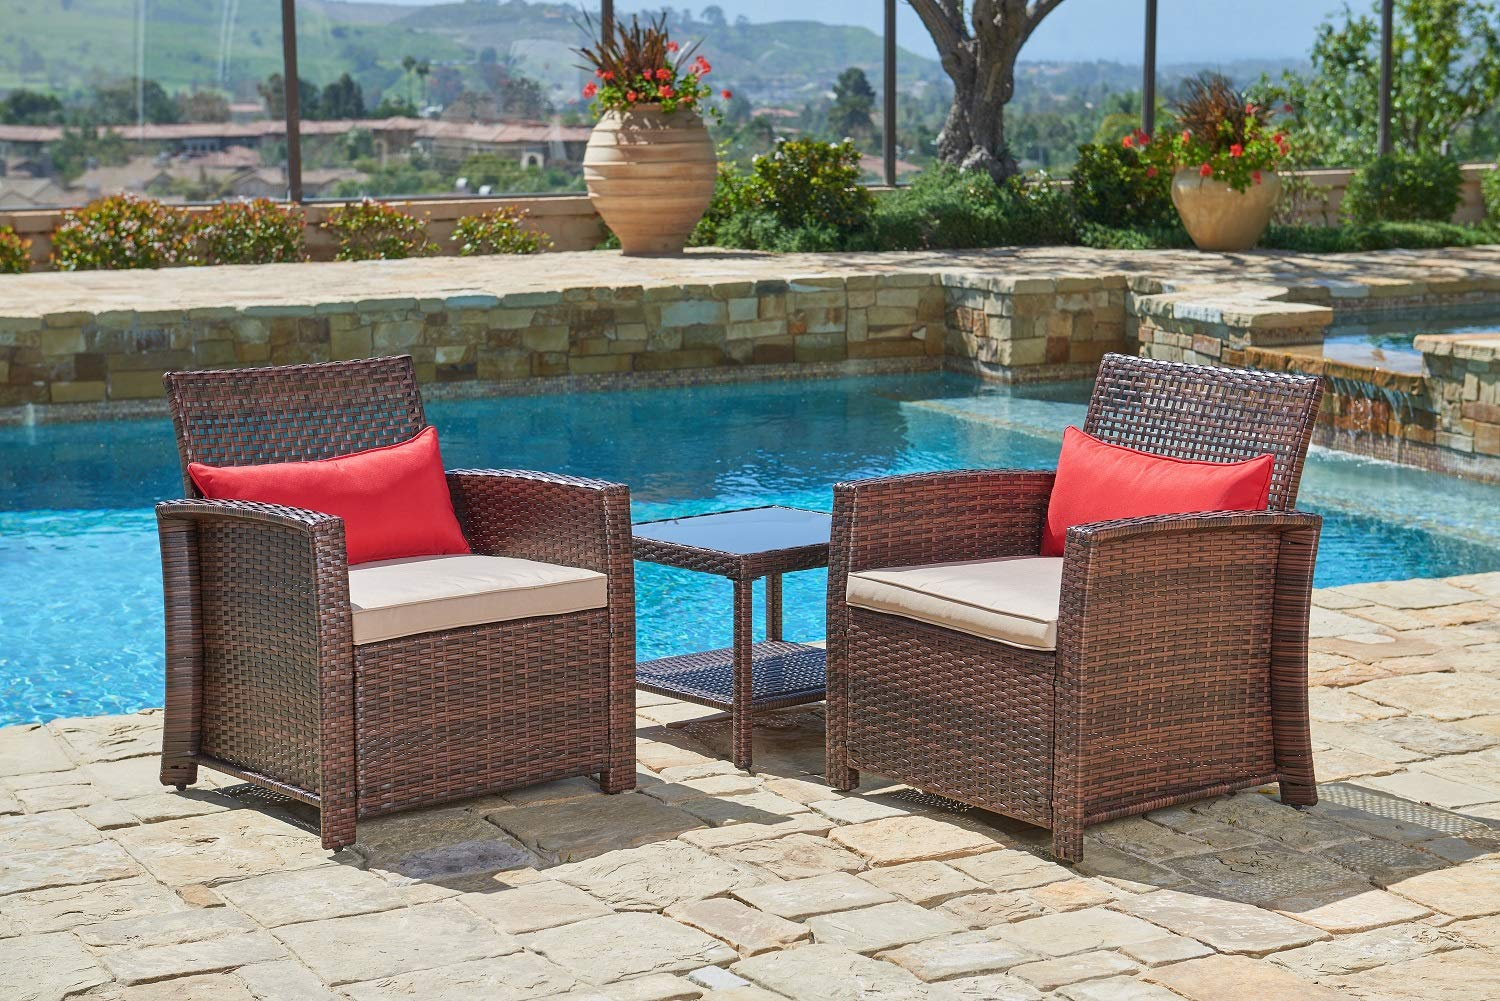 Suncrown outdoor wicker chairs with glass top table 3 piece all weather patio furniture thick durable cushions with washable covers porch backyard